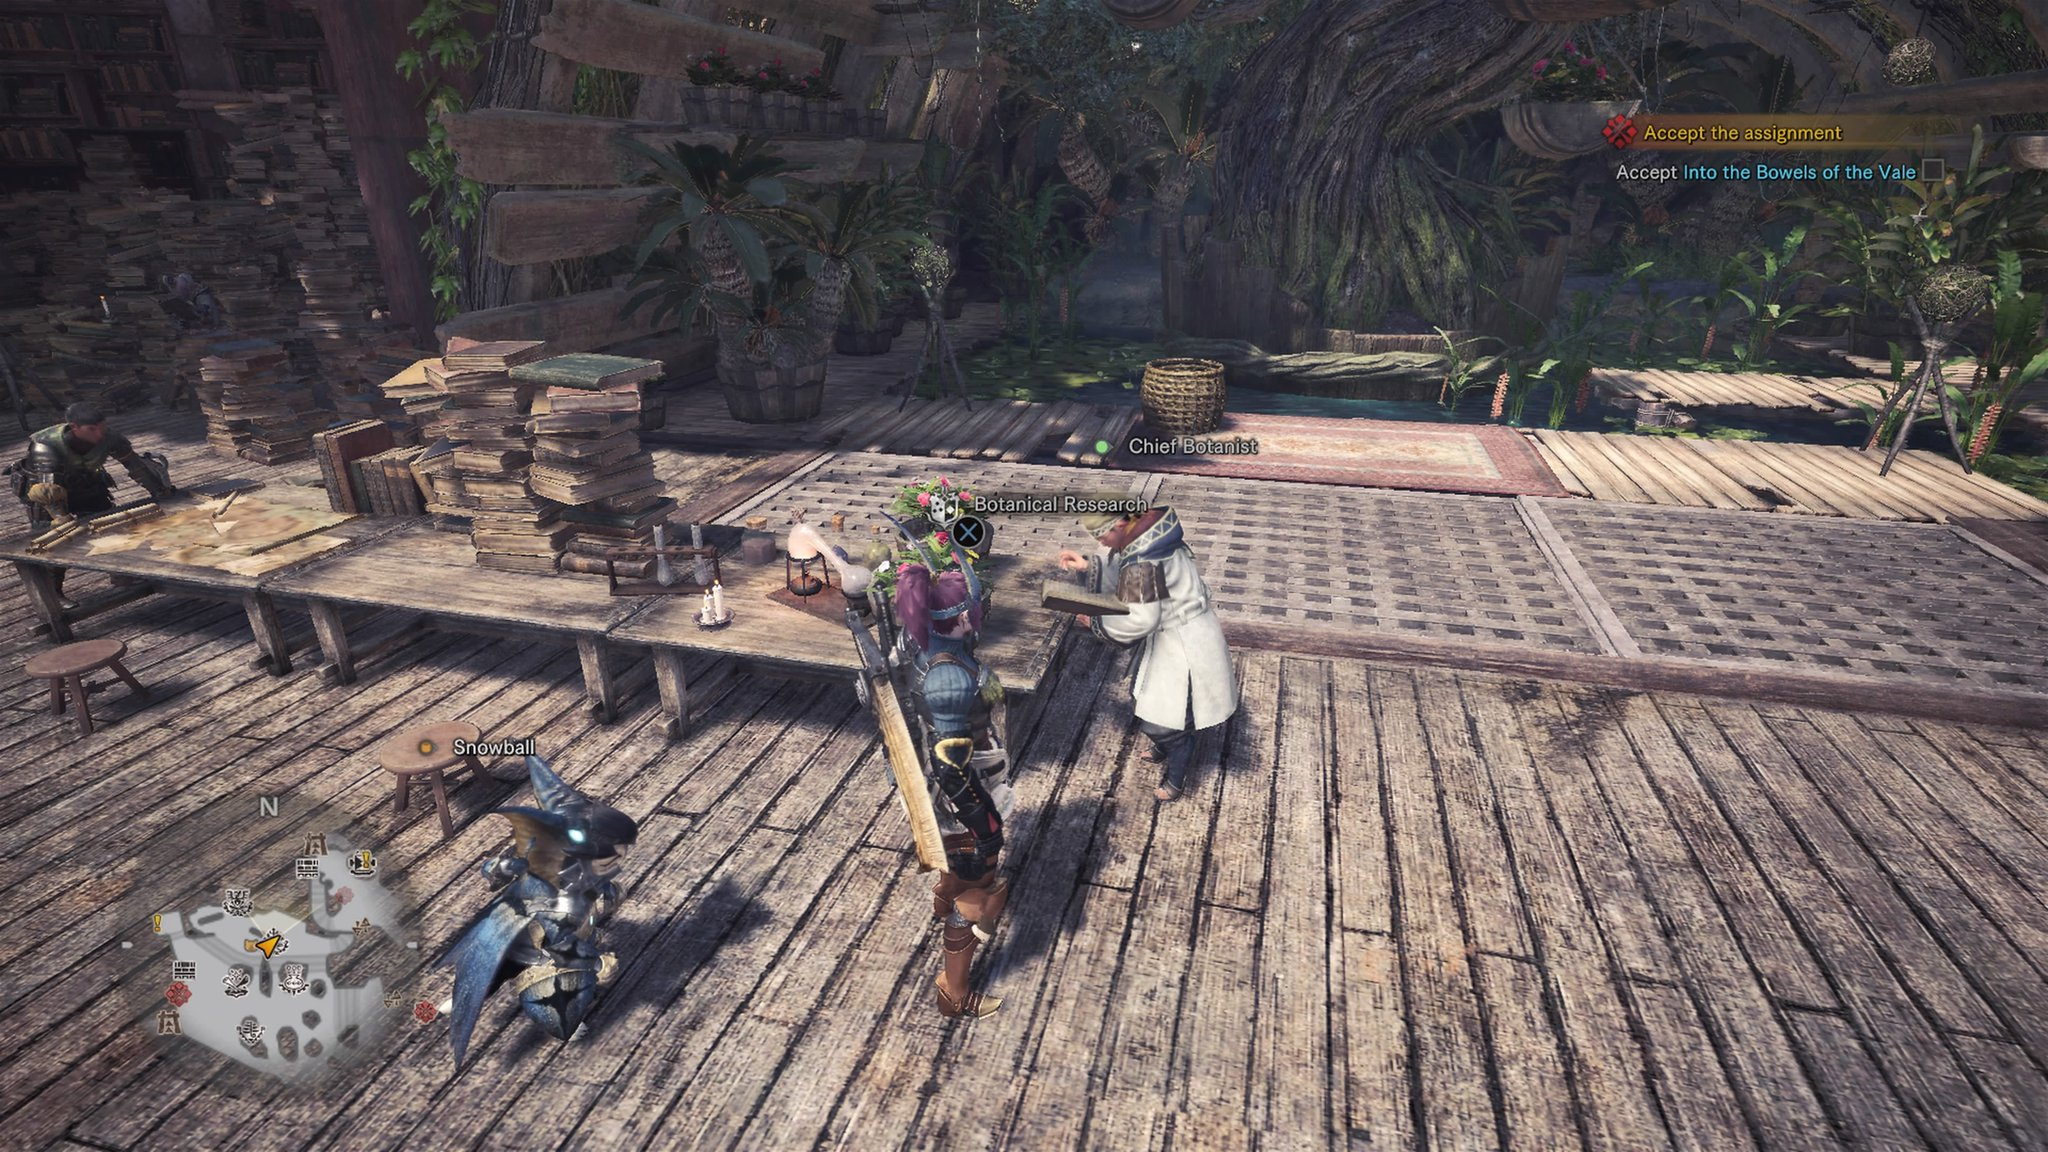 Monster hunter world botanical research center guide how to farm go and see the character and the botanical research center will now be available for use what is the botanical research center solutioingenieria Image collections